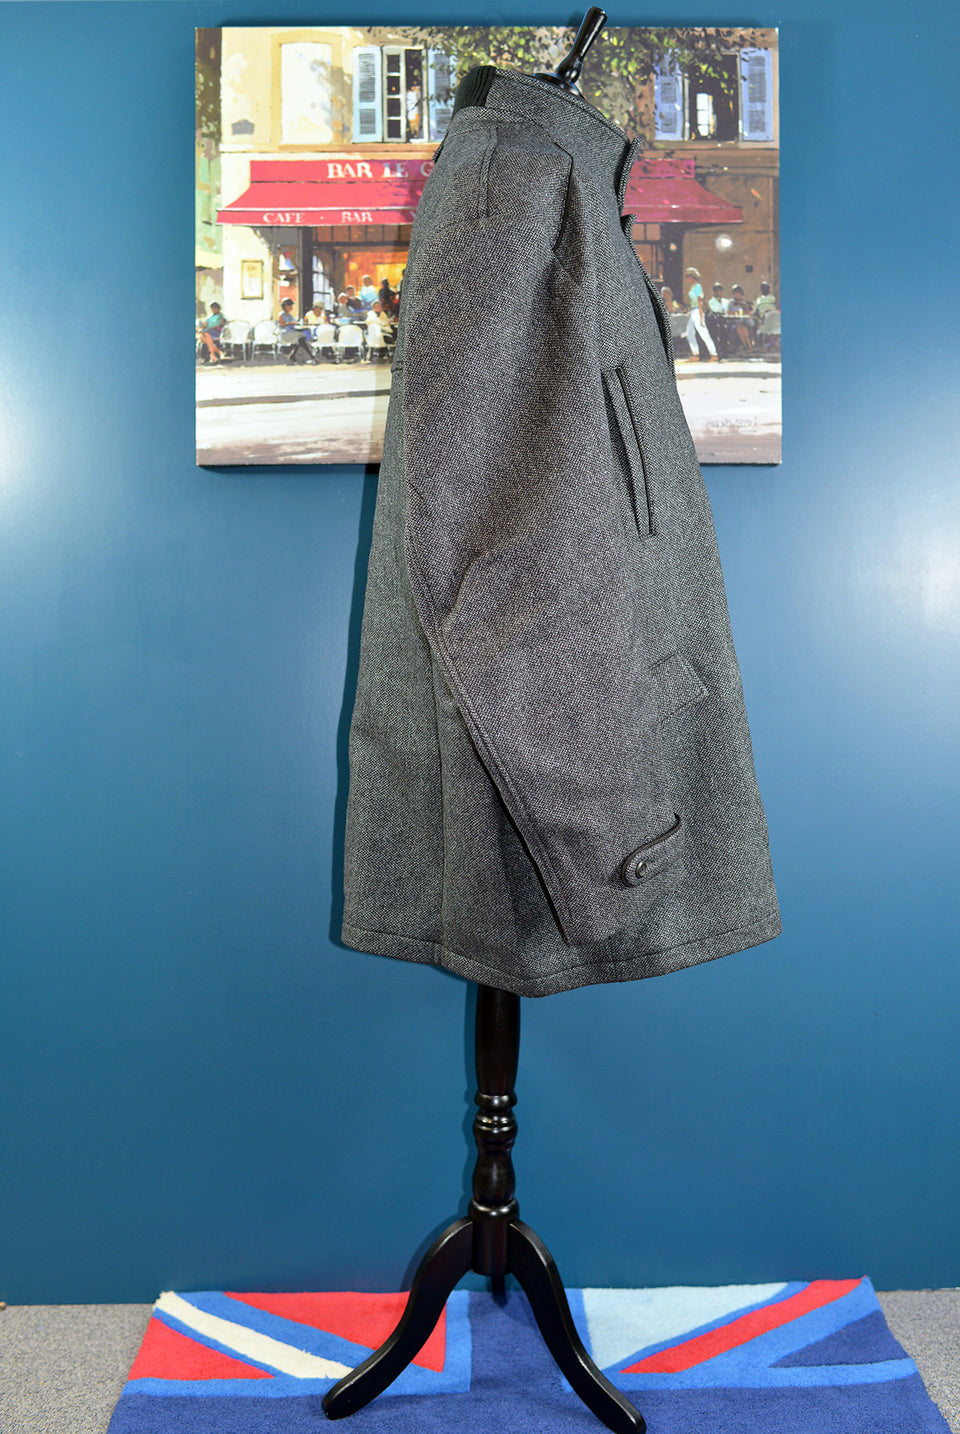 OXIDE Men's Wool Blend Grey Winter Jacket/Coat, Size 4T (XXXL). NEW with Tags.